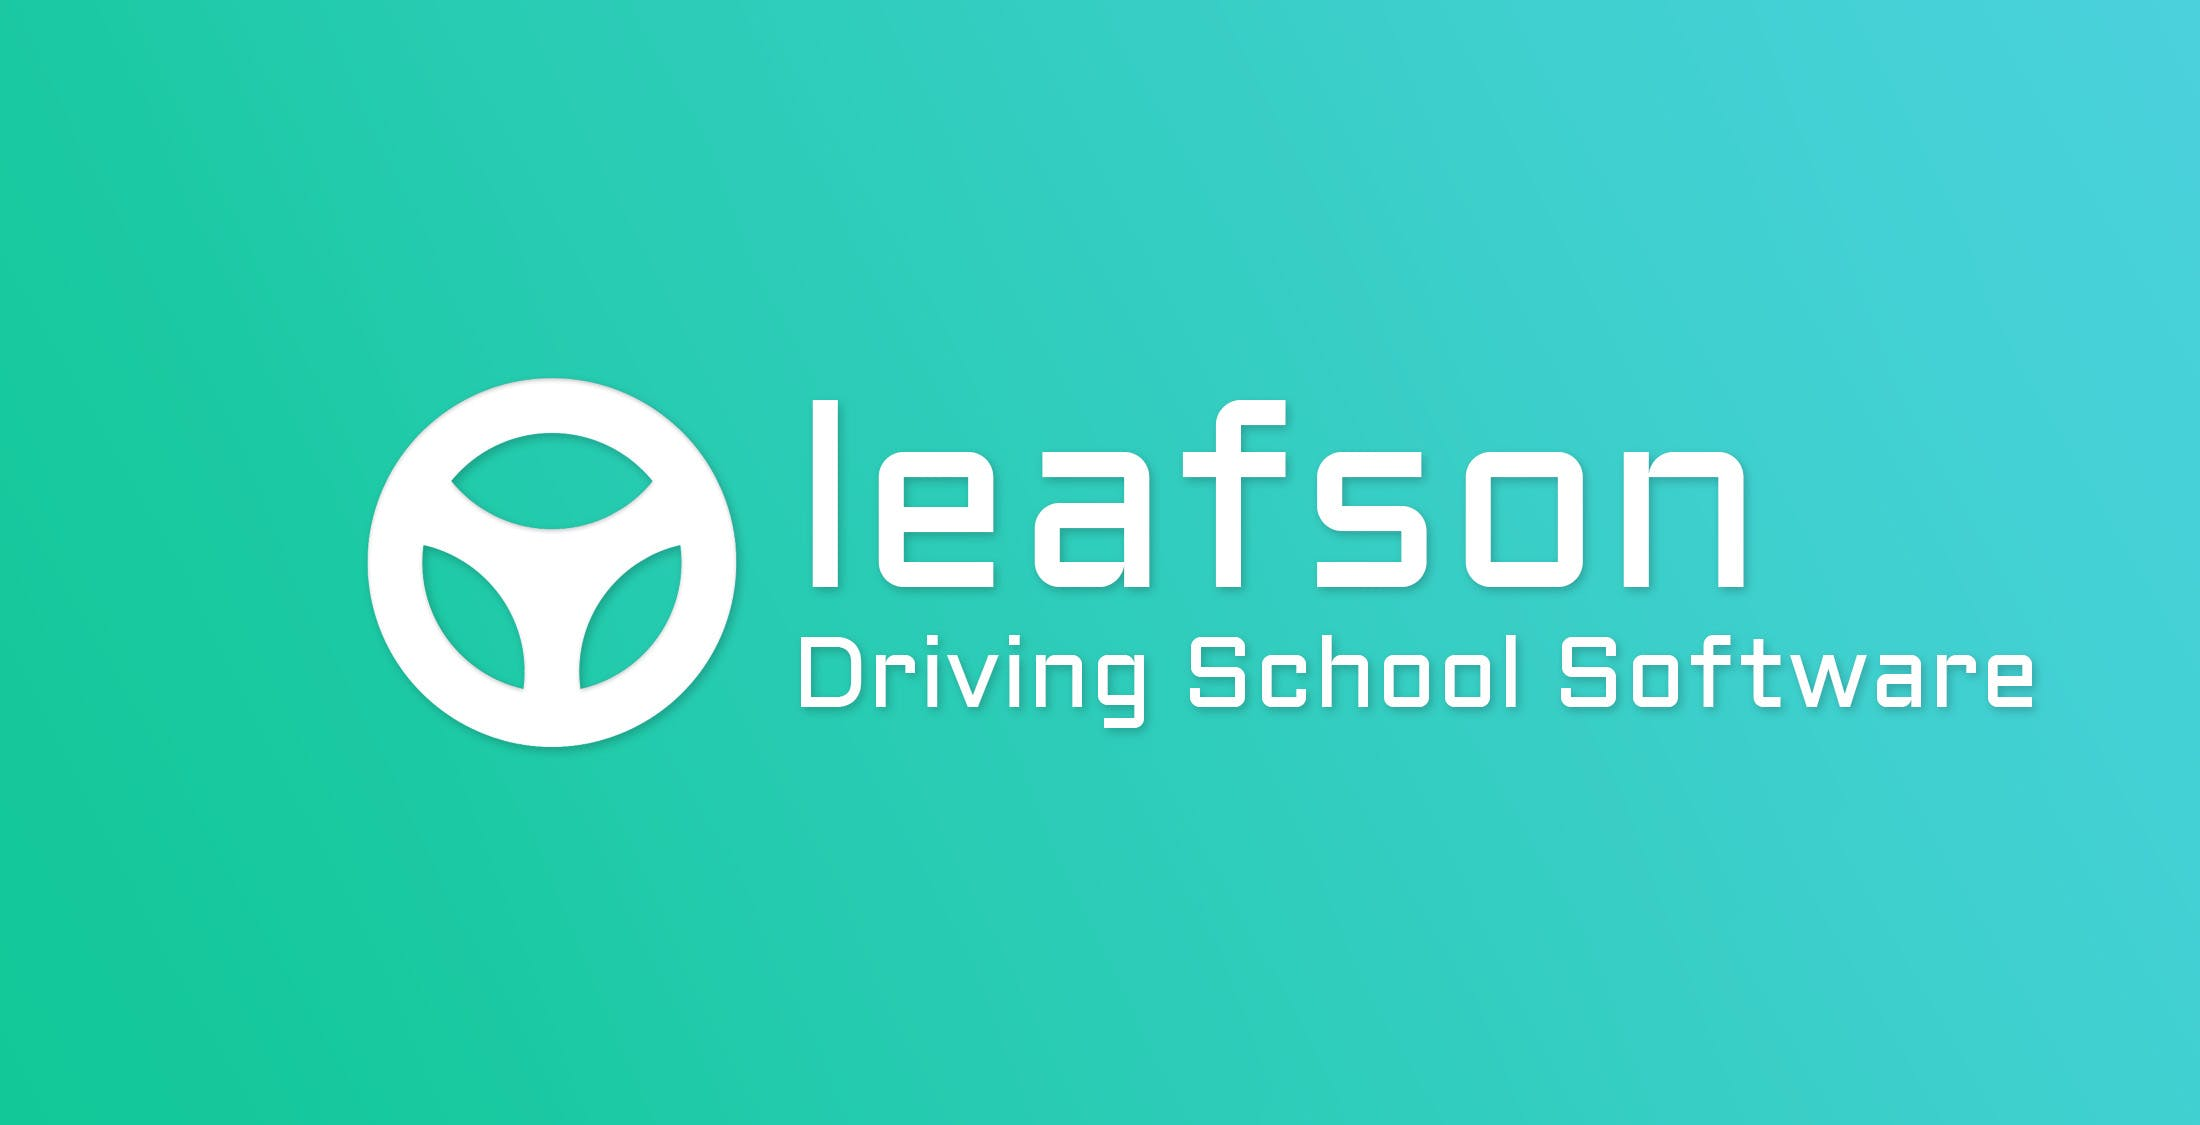 Managing your driving school has never been easier. Clear and simple to use.